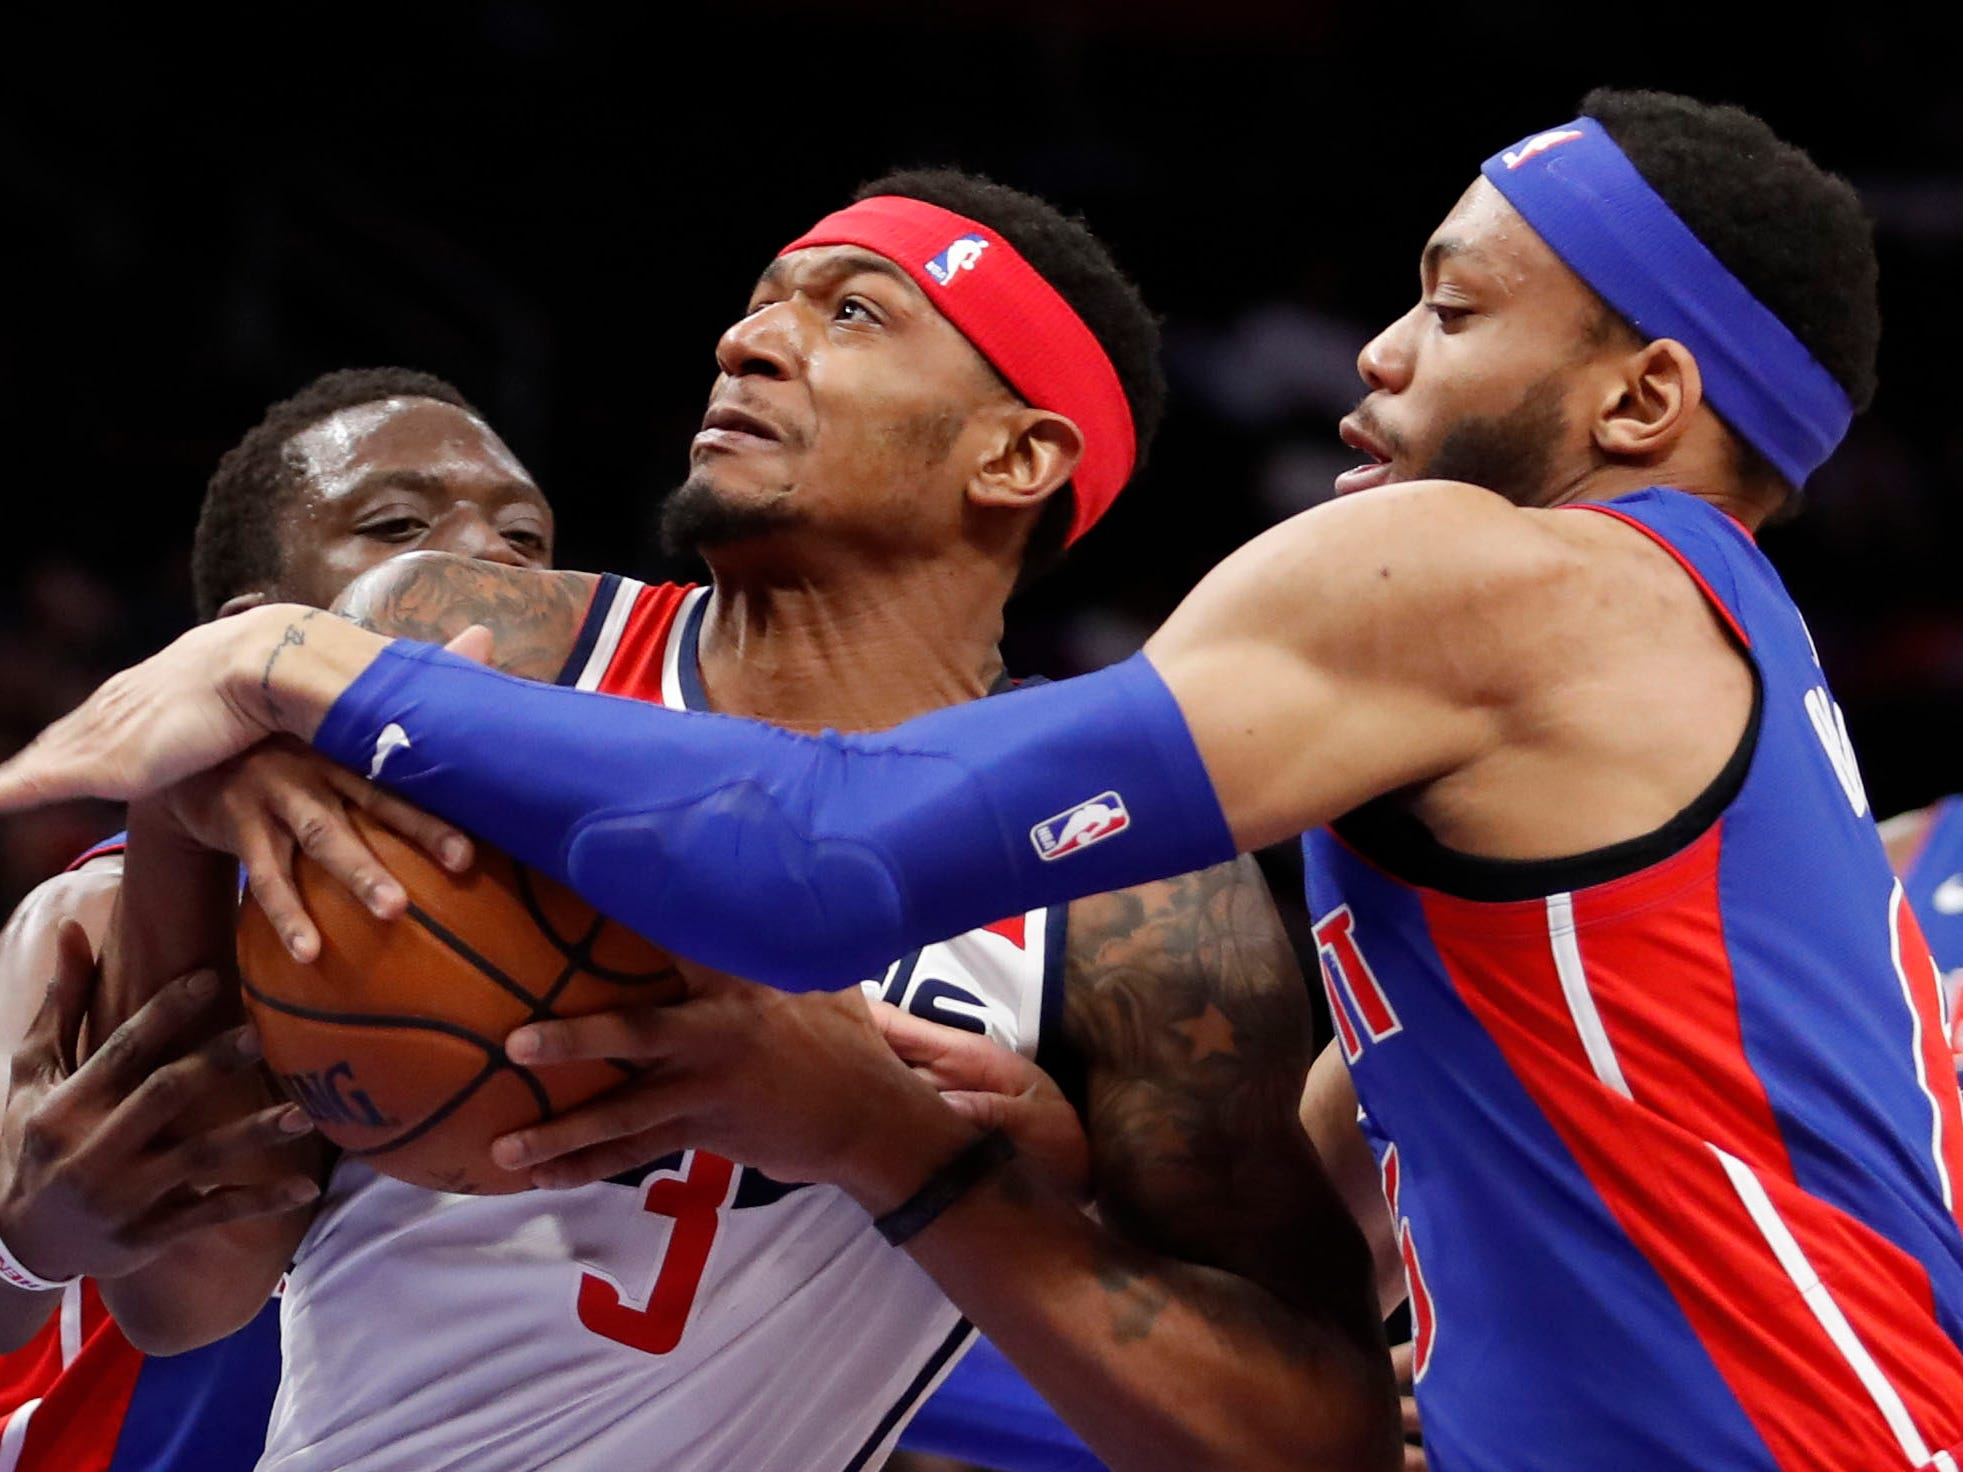 Washington Wizards guard Bradley Beal is defended by Detroit Pistons guard  Bruce Brown, right, and Reggie Jackson, left, at Little Caesars Arena, Feb. 11, 2019.